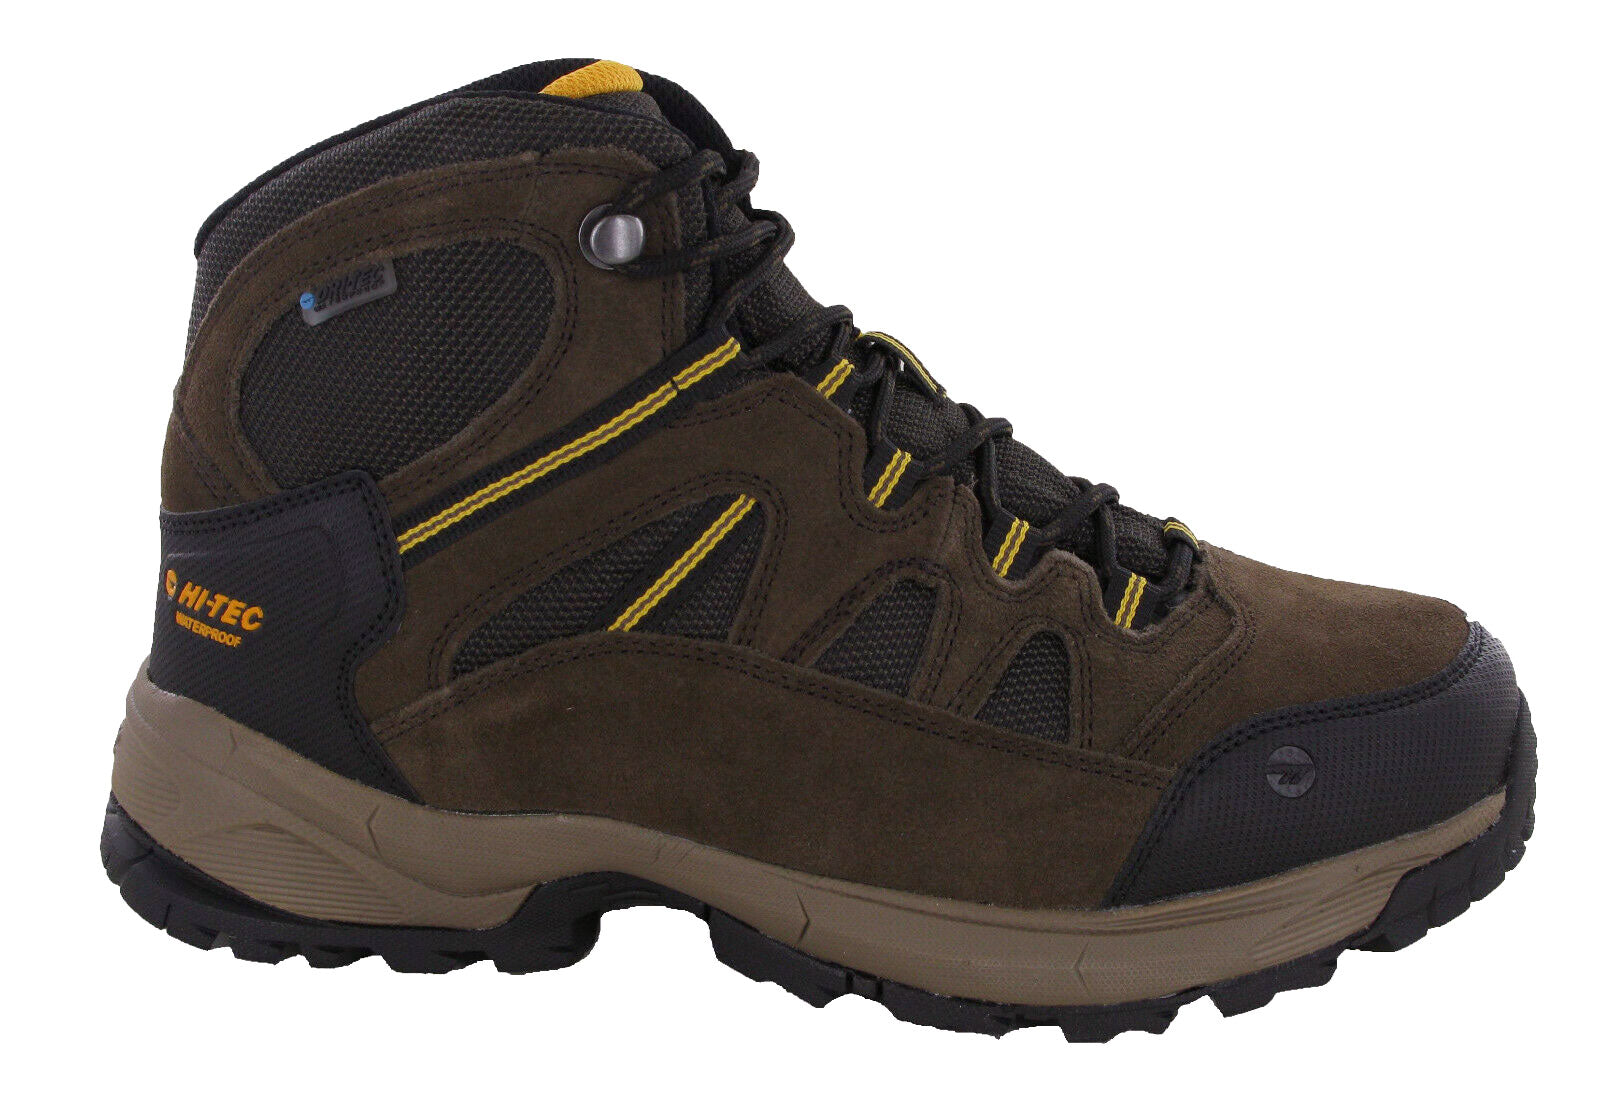 Dark Chocolate Gold Hi-Tec Bandera Lite Waterproof Hiking Boots